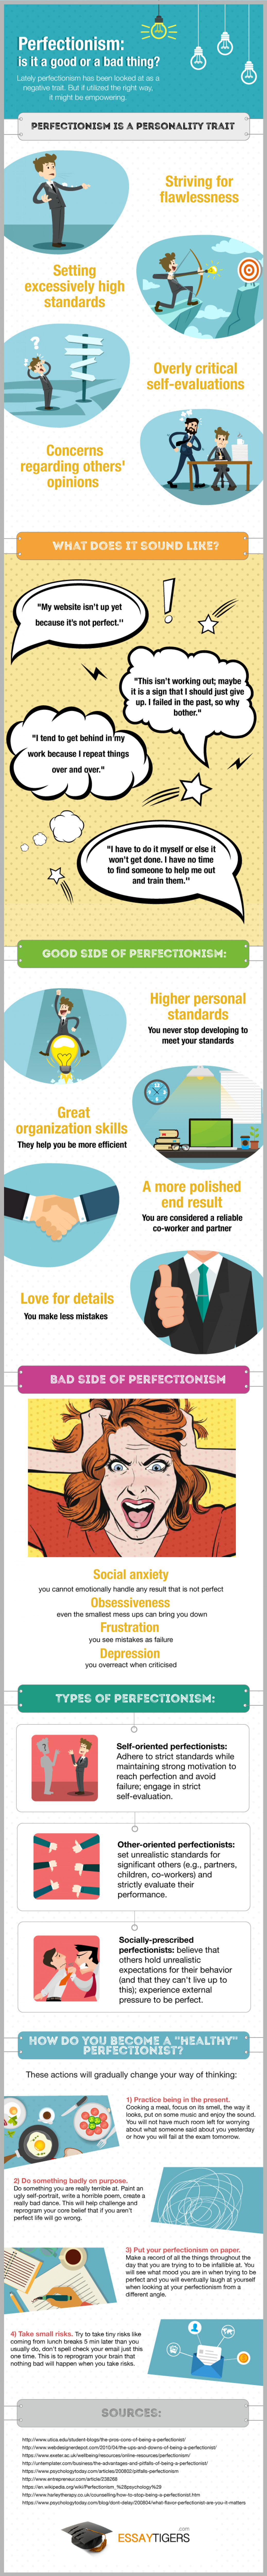 Perfectionism: Is It a Good Or a Bad Thing?  Infographic